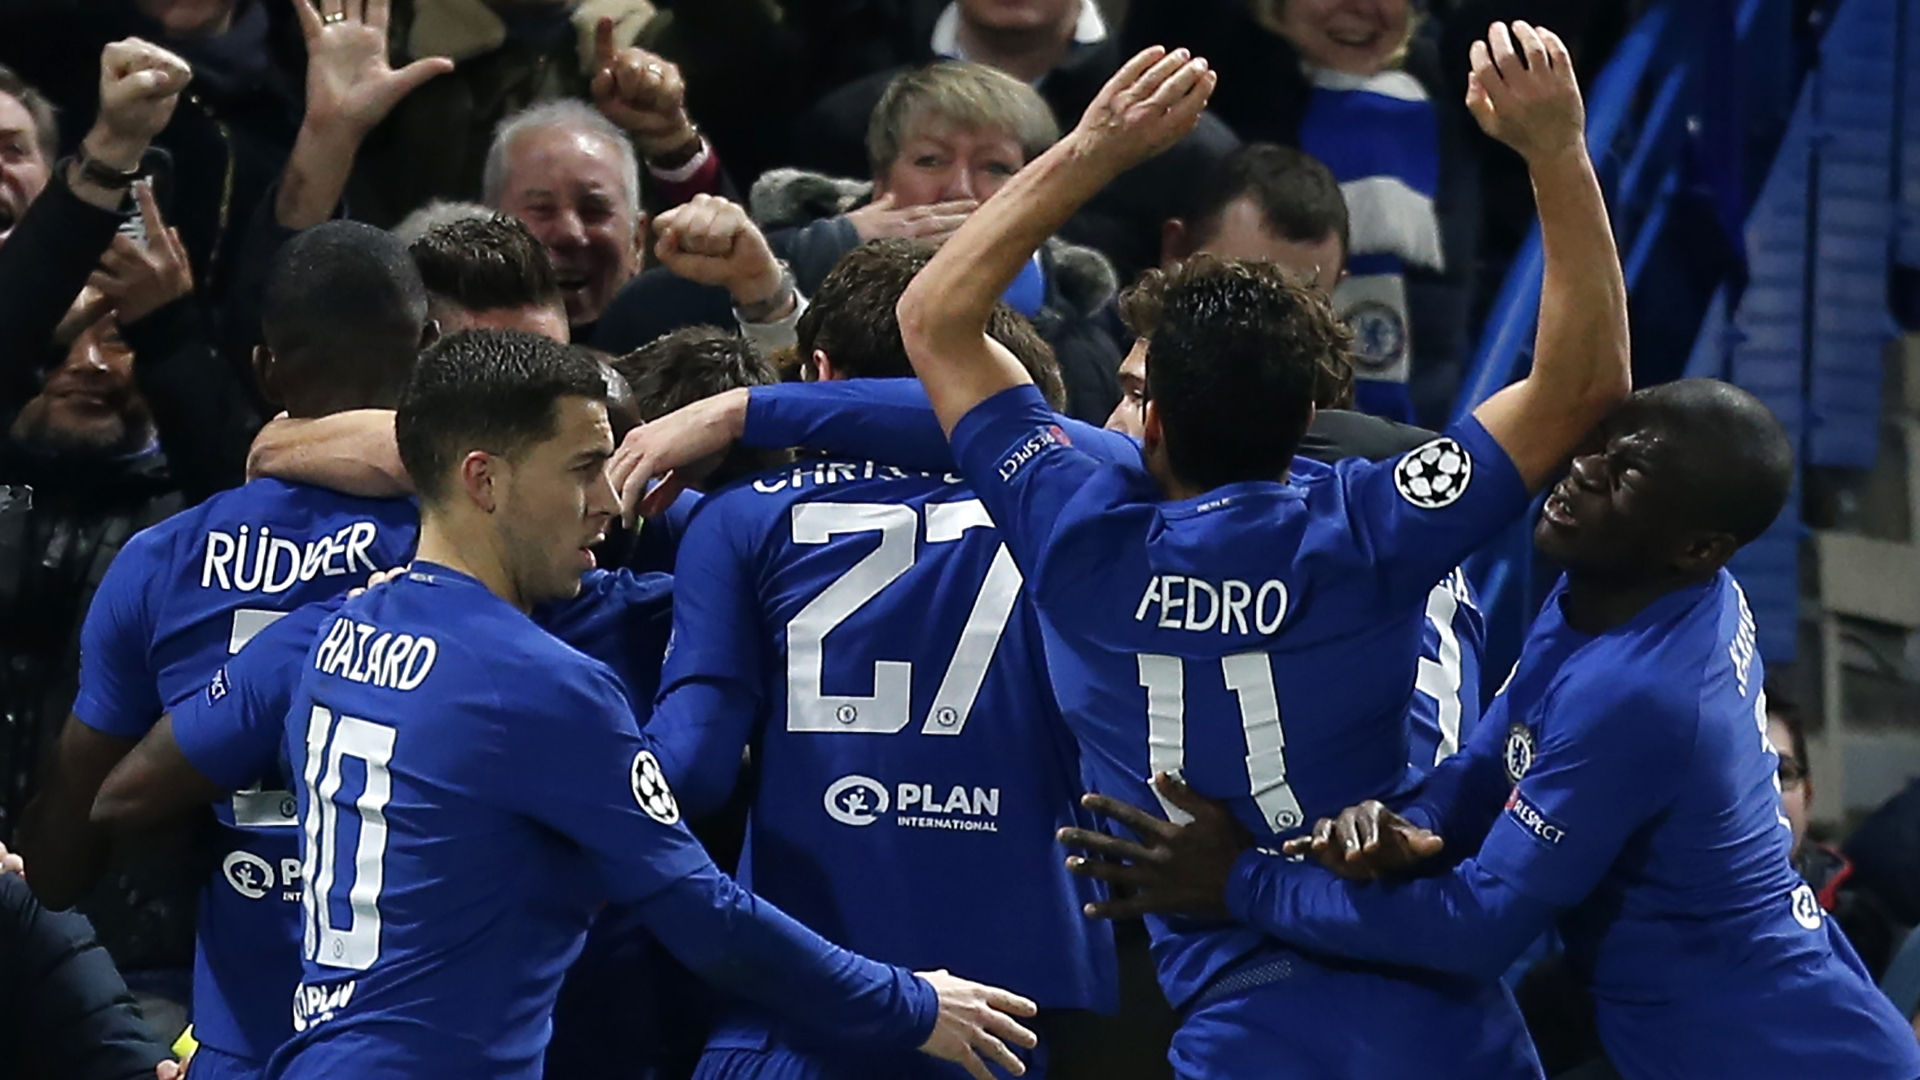 Chelsea celebrate vs Barcelona